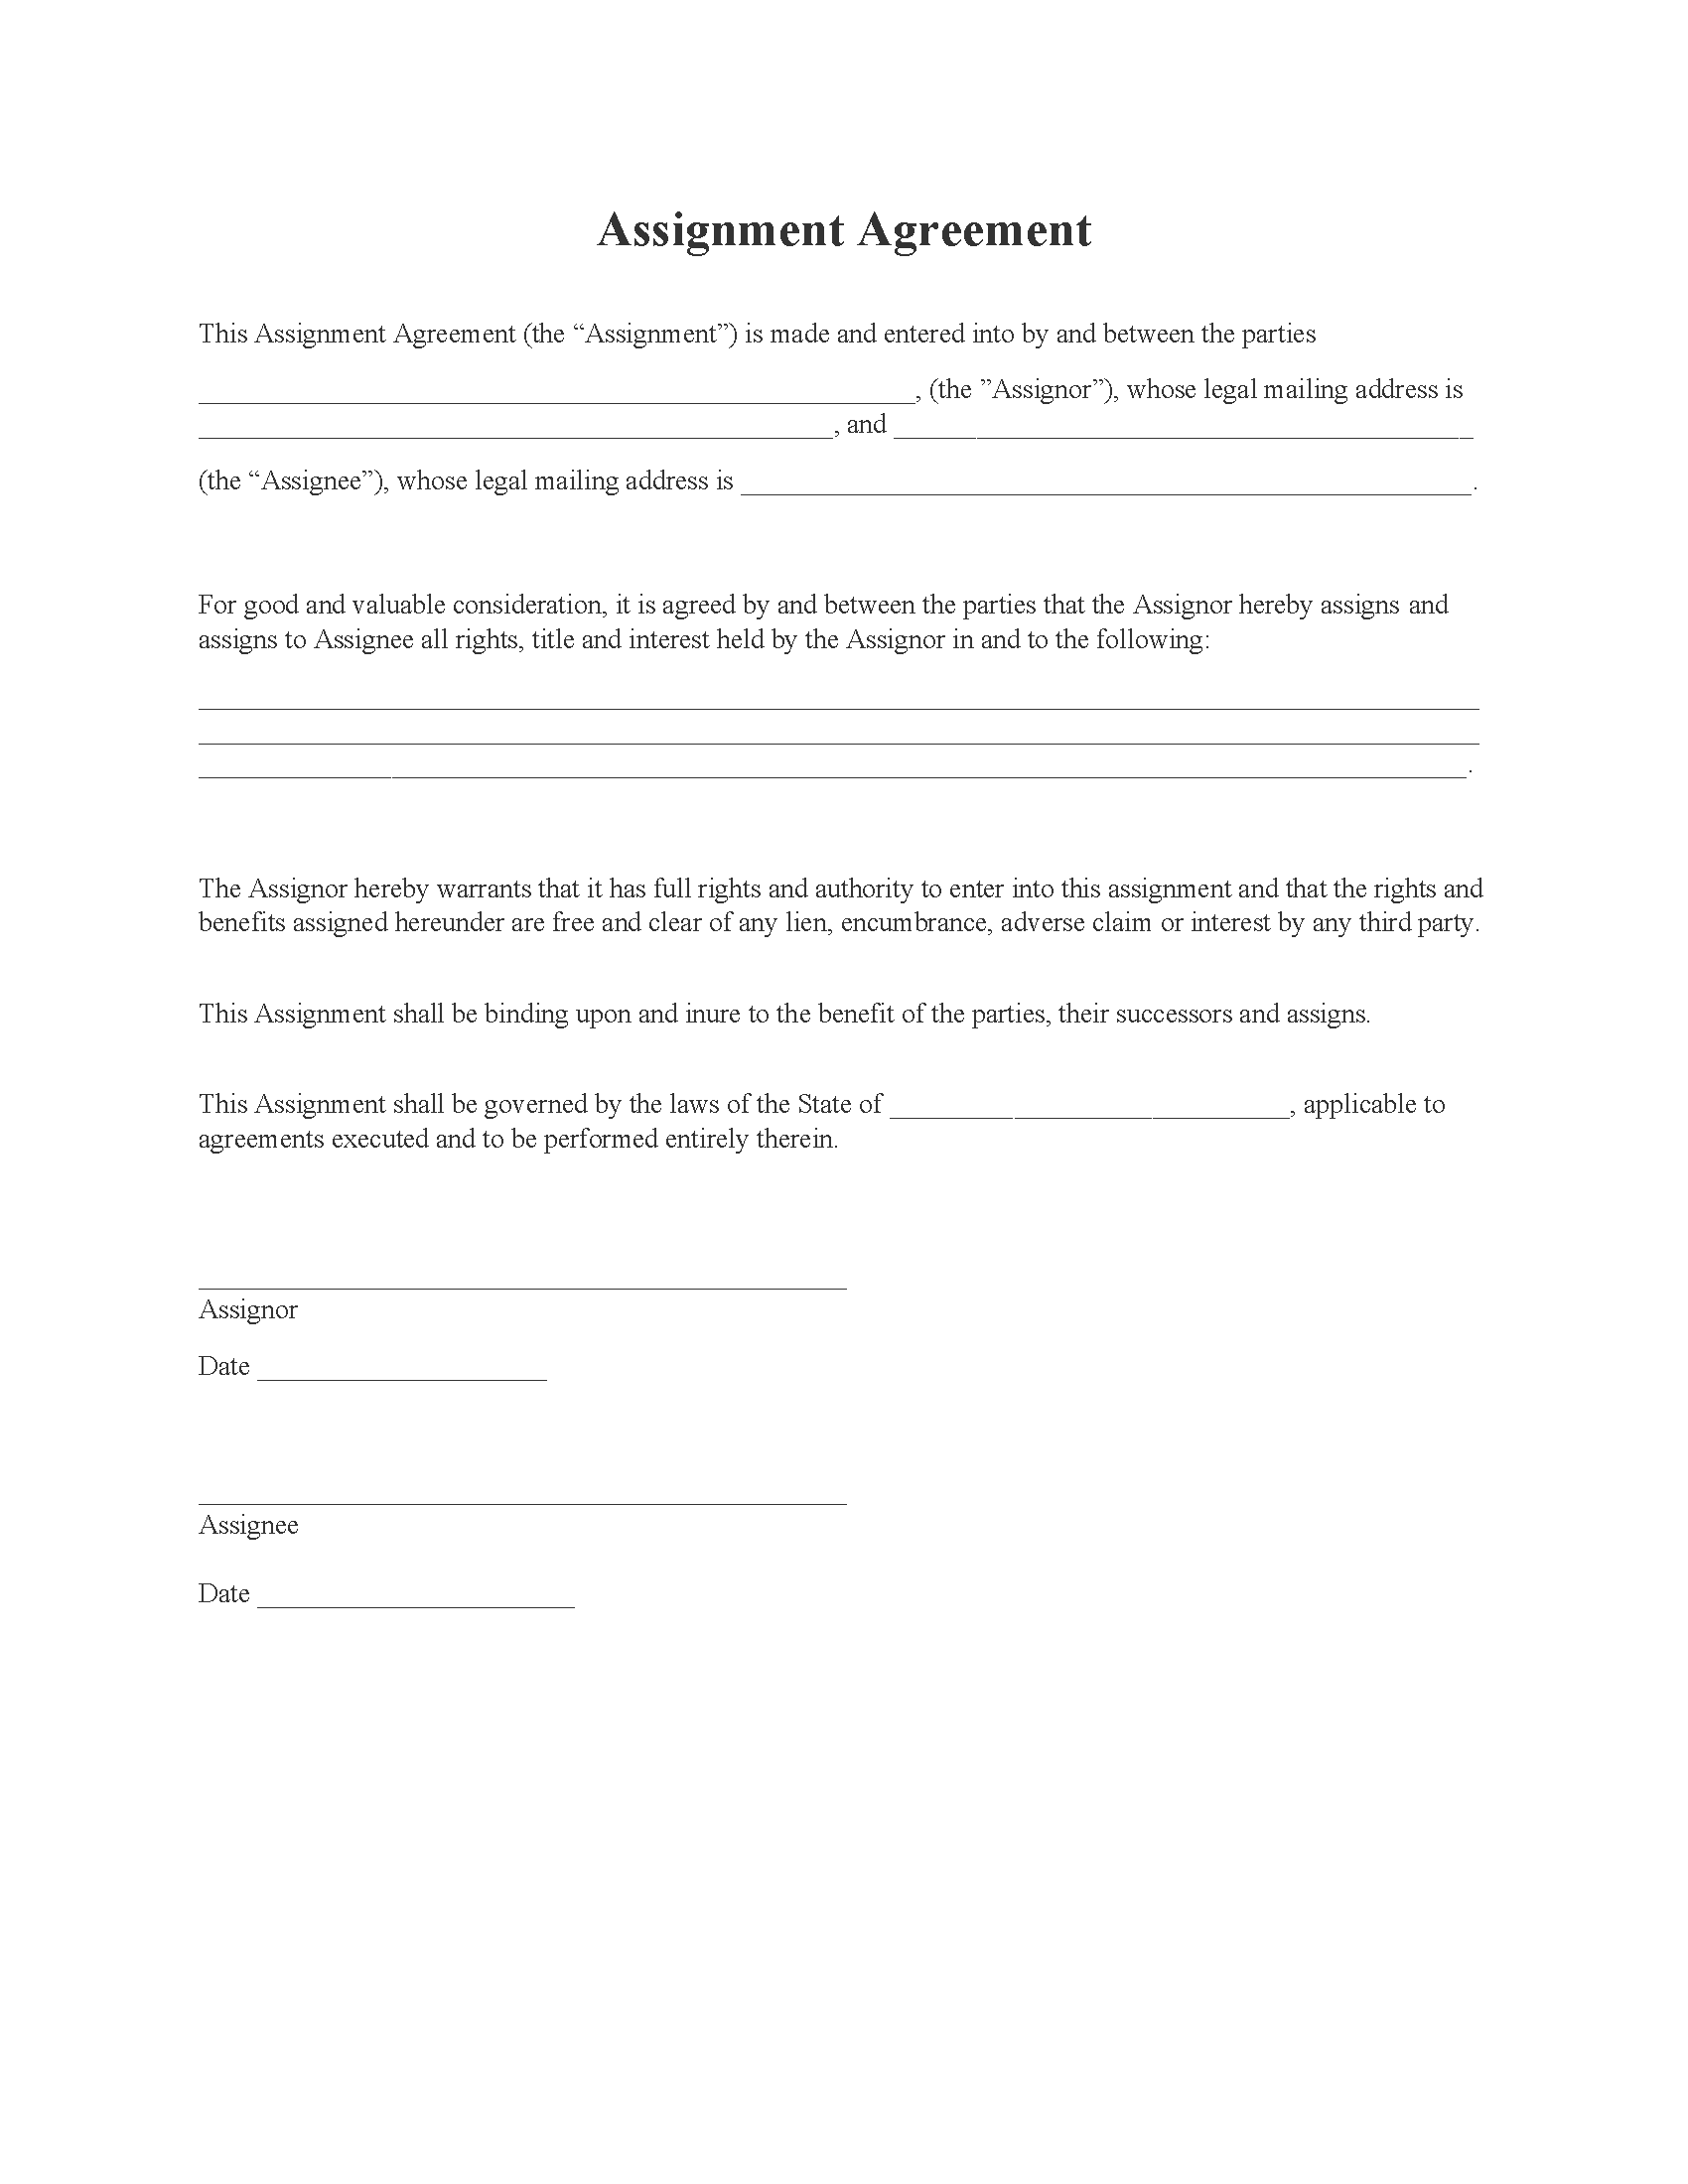 General Assignment Agreement